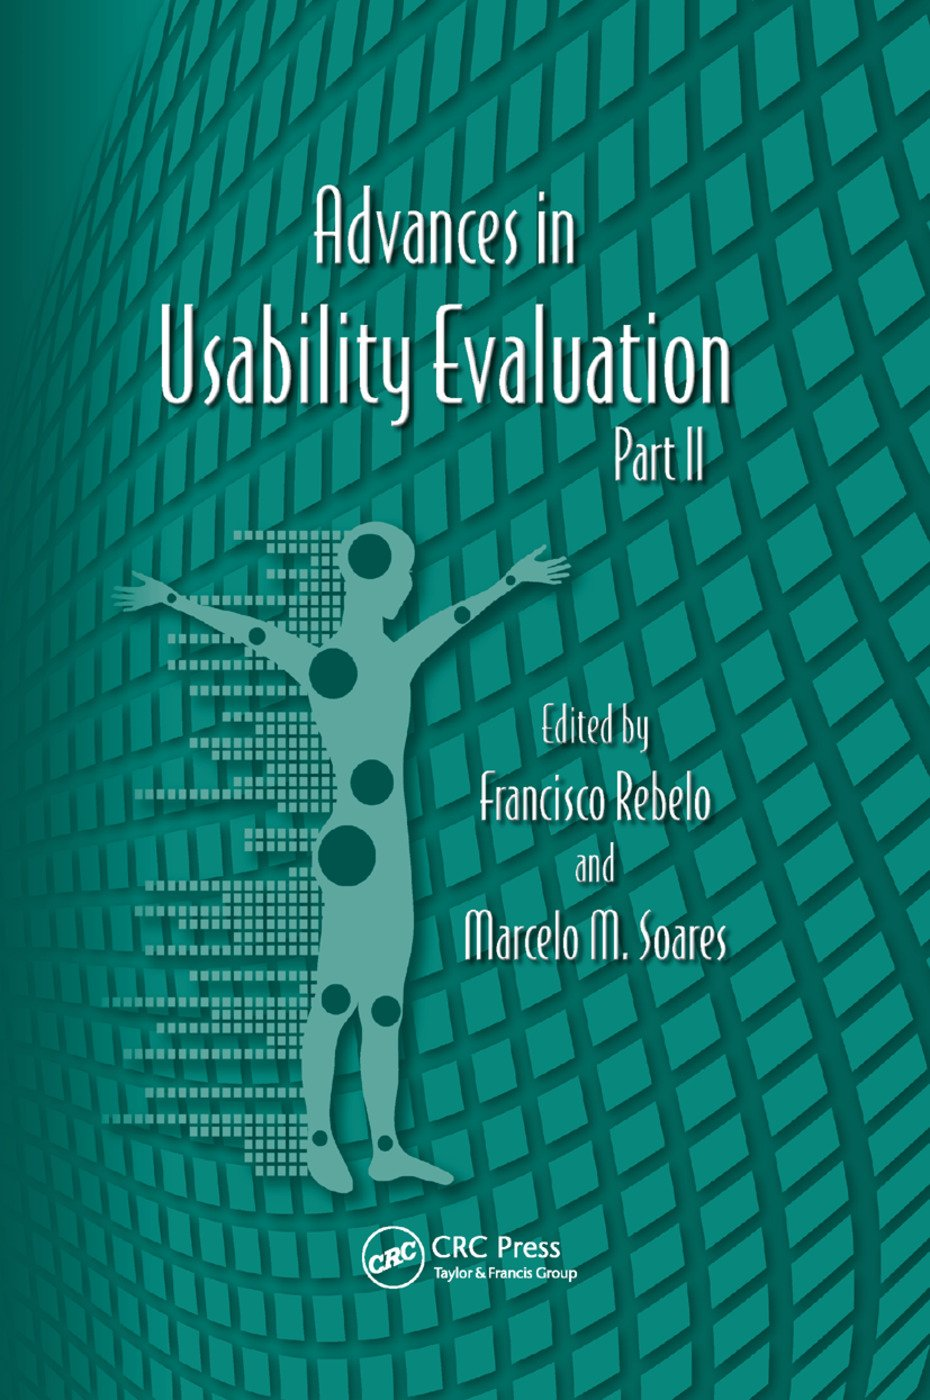 Advances in Usability Evaluation Part II